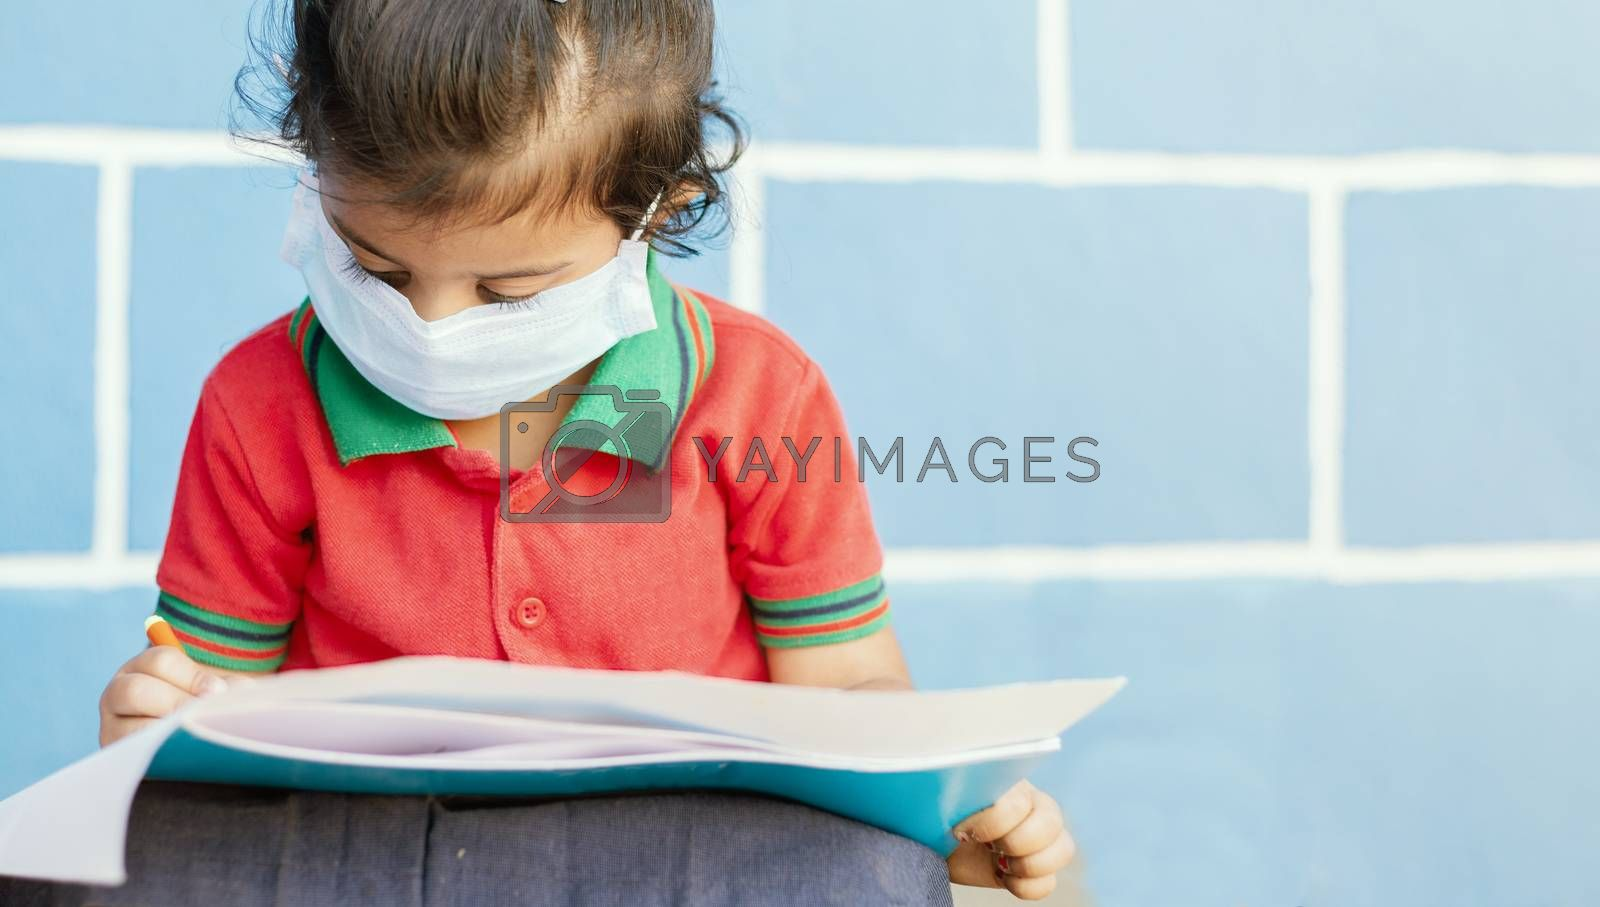 Covid 19 or Coronavirus and Air pollution pm2.5 concept - Little girl wearing medical mask and busy in writing at school - showing Wuhan covid-19 or sars cov 19 outbreak or epidemic of virus. by lakshmiprasad